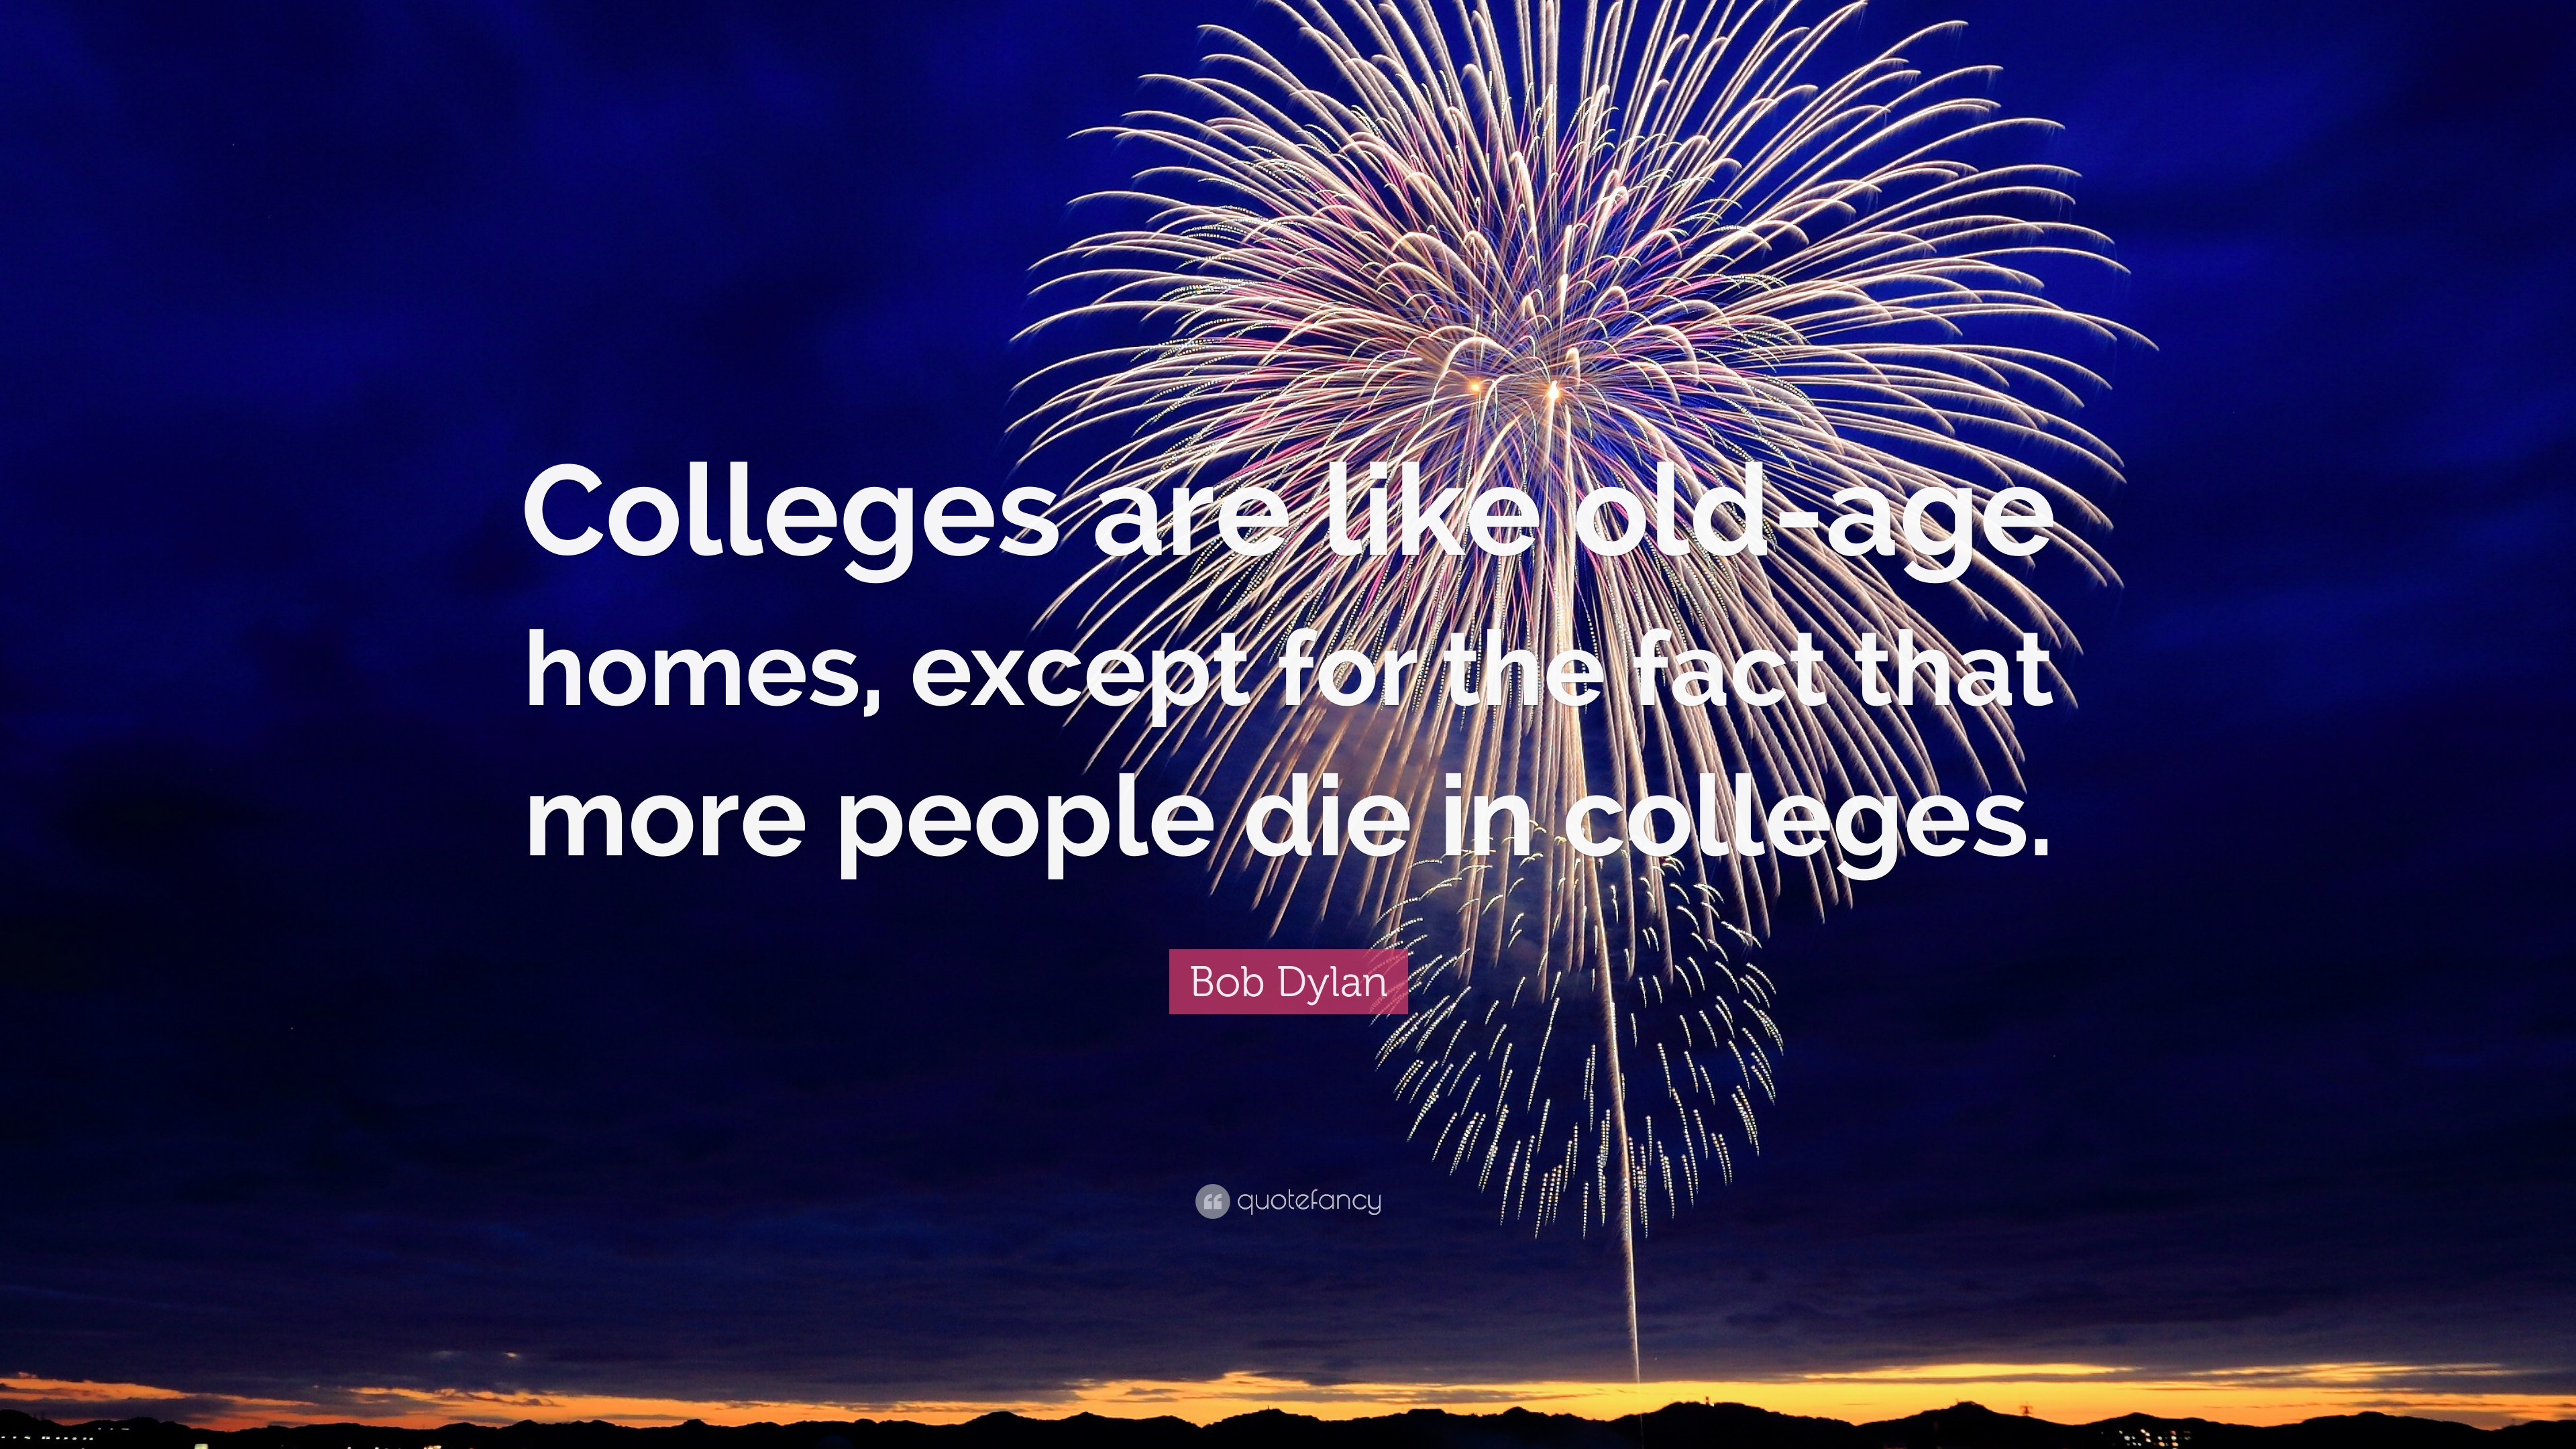 bob dylan quote colleges are like old age homes except for the bob dylan quote colleges are like old age homes except for the